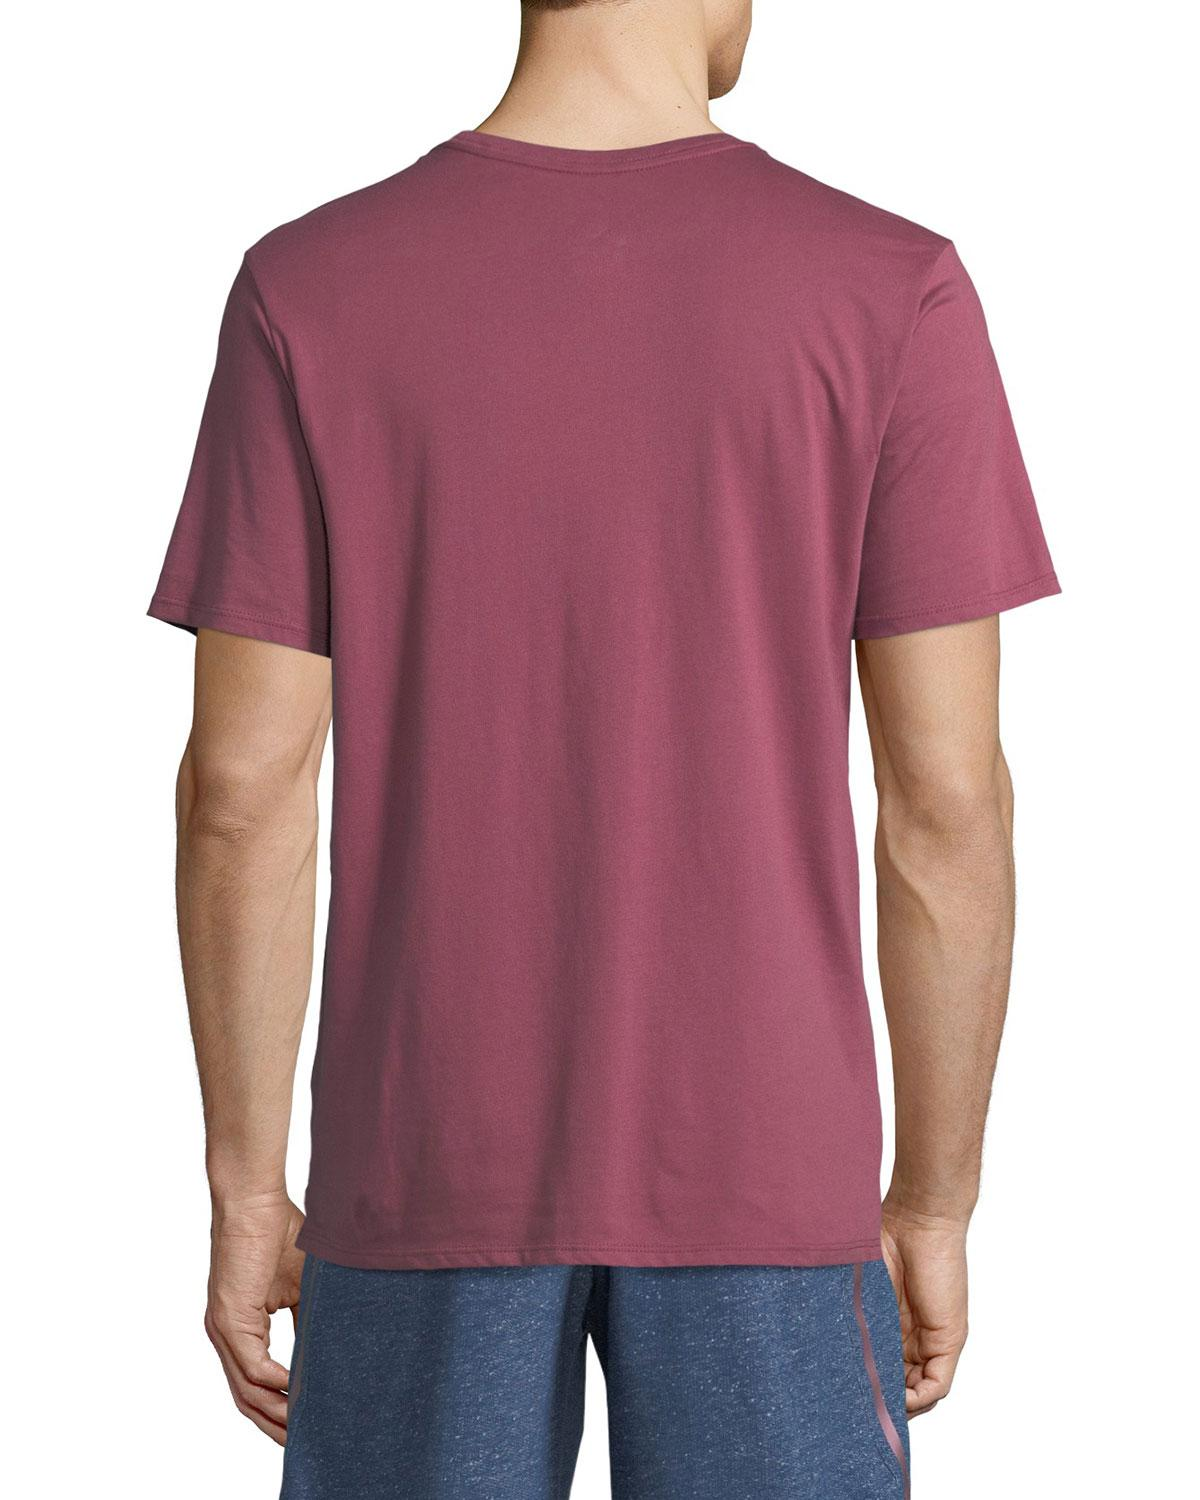 Lyst nike x pigalle logo cotton jersey t shirt in purple for Lands end logo shirts